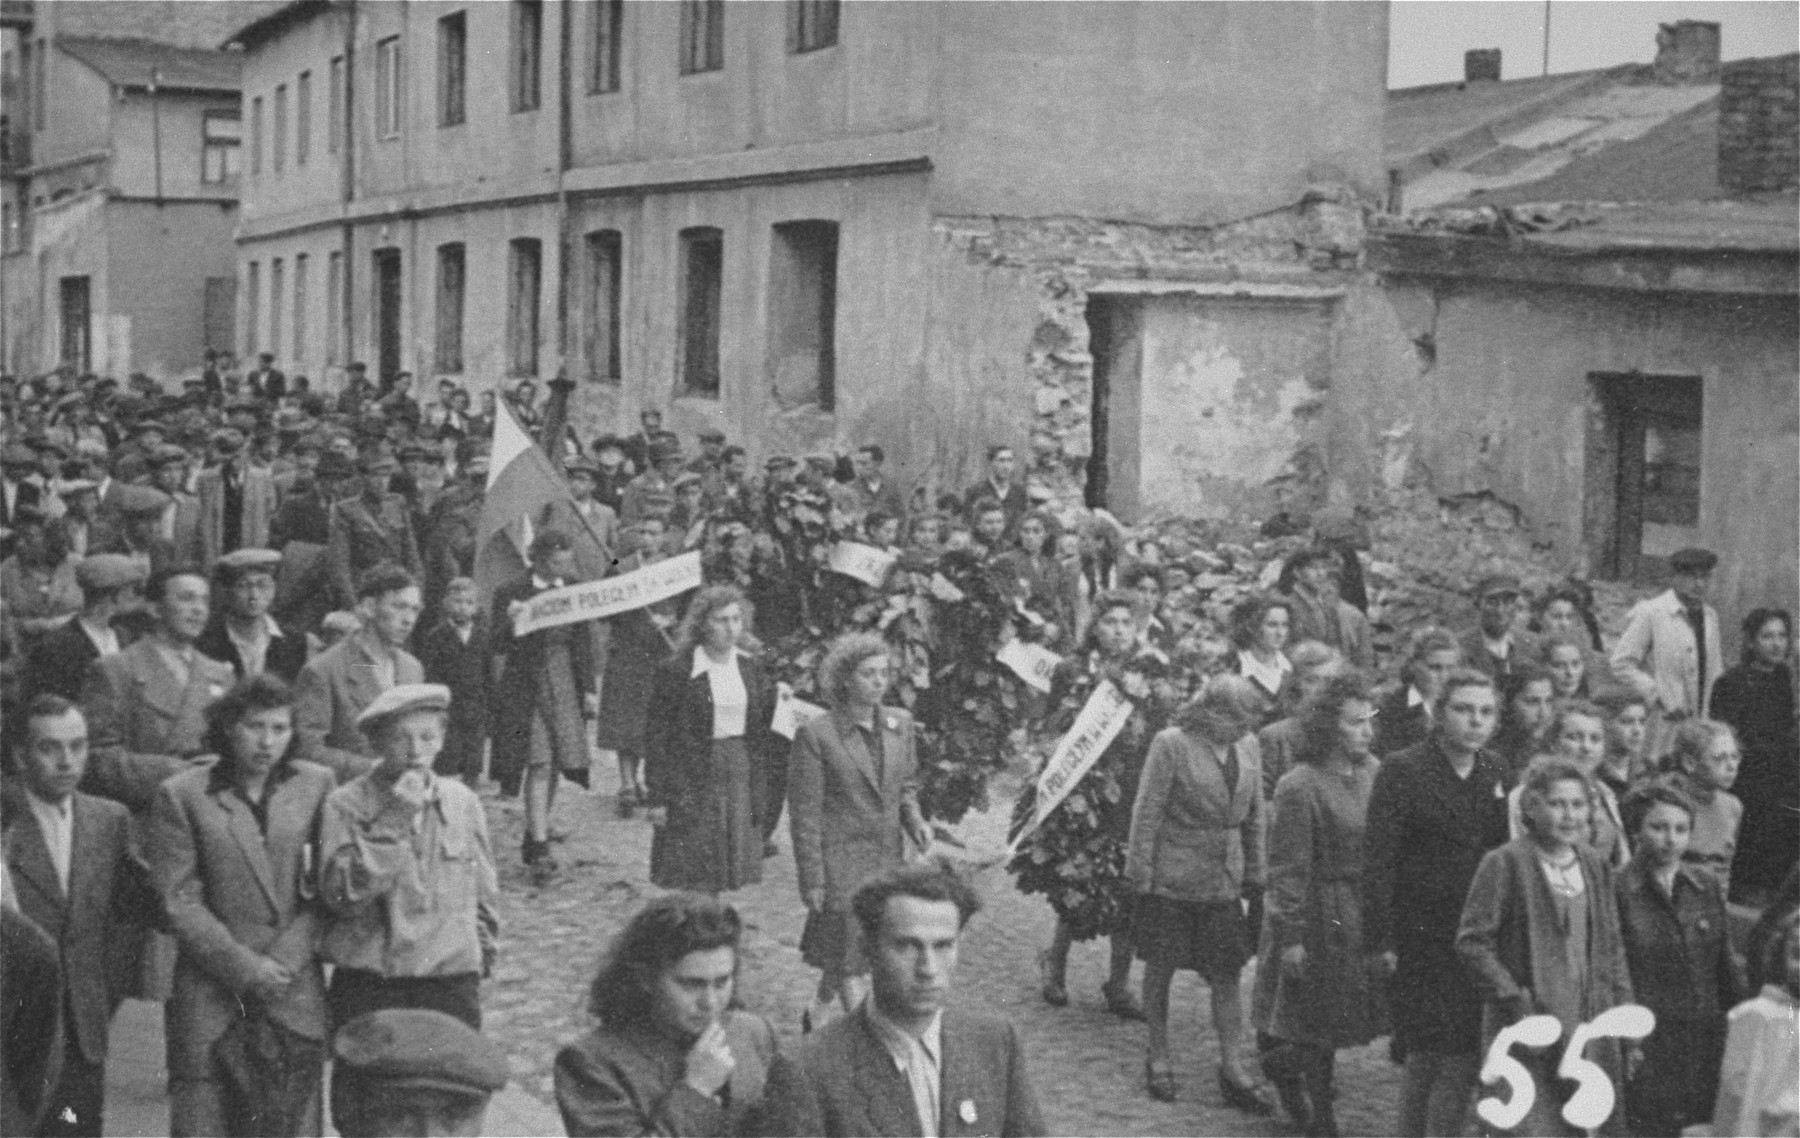 Jewish survivors in Czestochowa march along Spadkowa-Kozia Street in protest against the way Jewish victims of German actions in the small ghetto were buried in mass graves filled with lime.  Hela and Jack Shipper are pictured in the foreground in the center.  As a result of the protest, the bodies were exhumed and buried in the Jewish cemetery in Czestochowa.  Among the victims were the donor's brother, Leib Shipper, his sister, Yentel (Shipper) Owieczko, and her daughter, Hela.